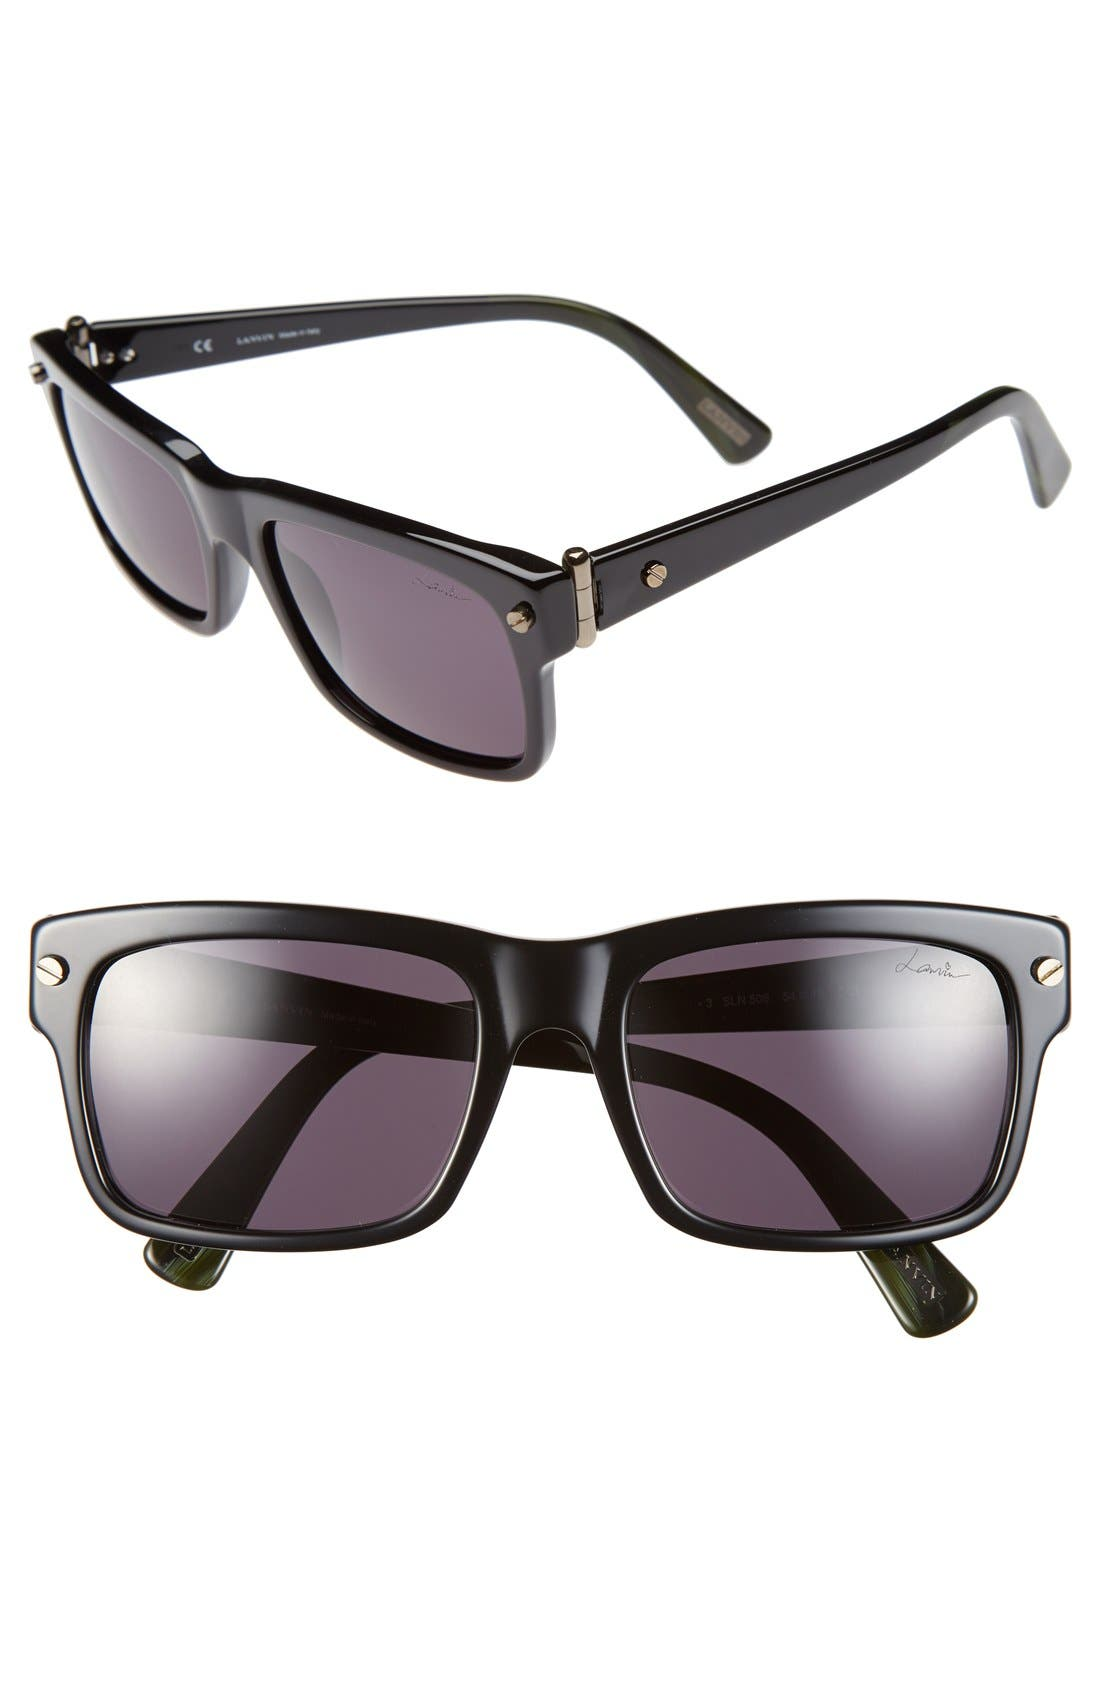 Alternate Image 1 Selected - Lanvin 54mm Polarized Sunglasses